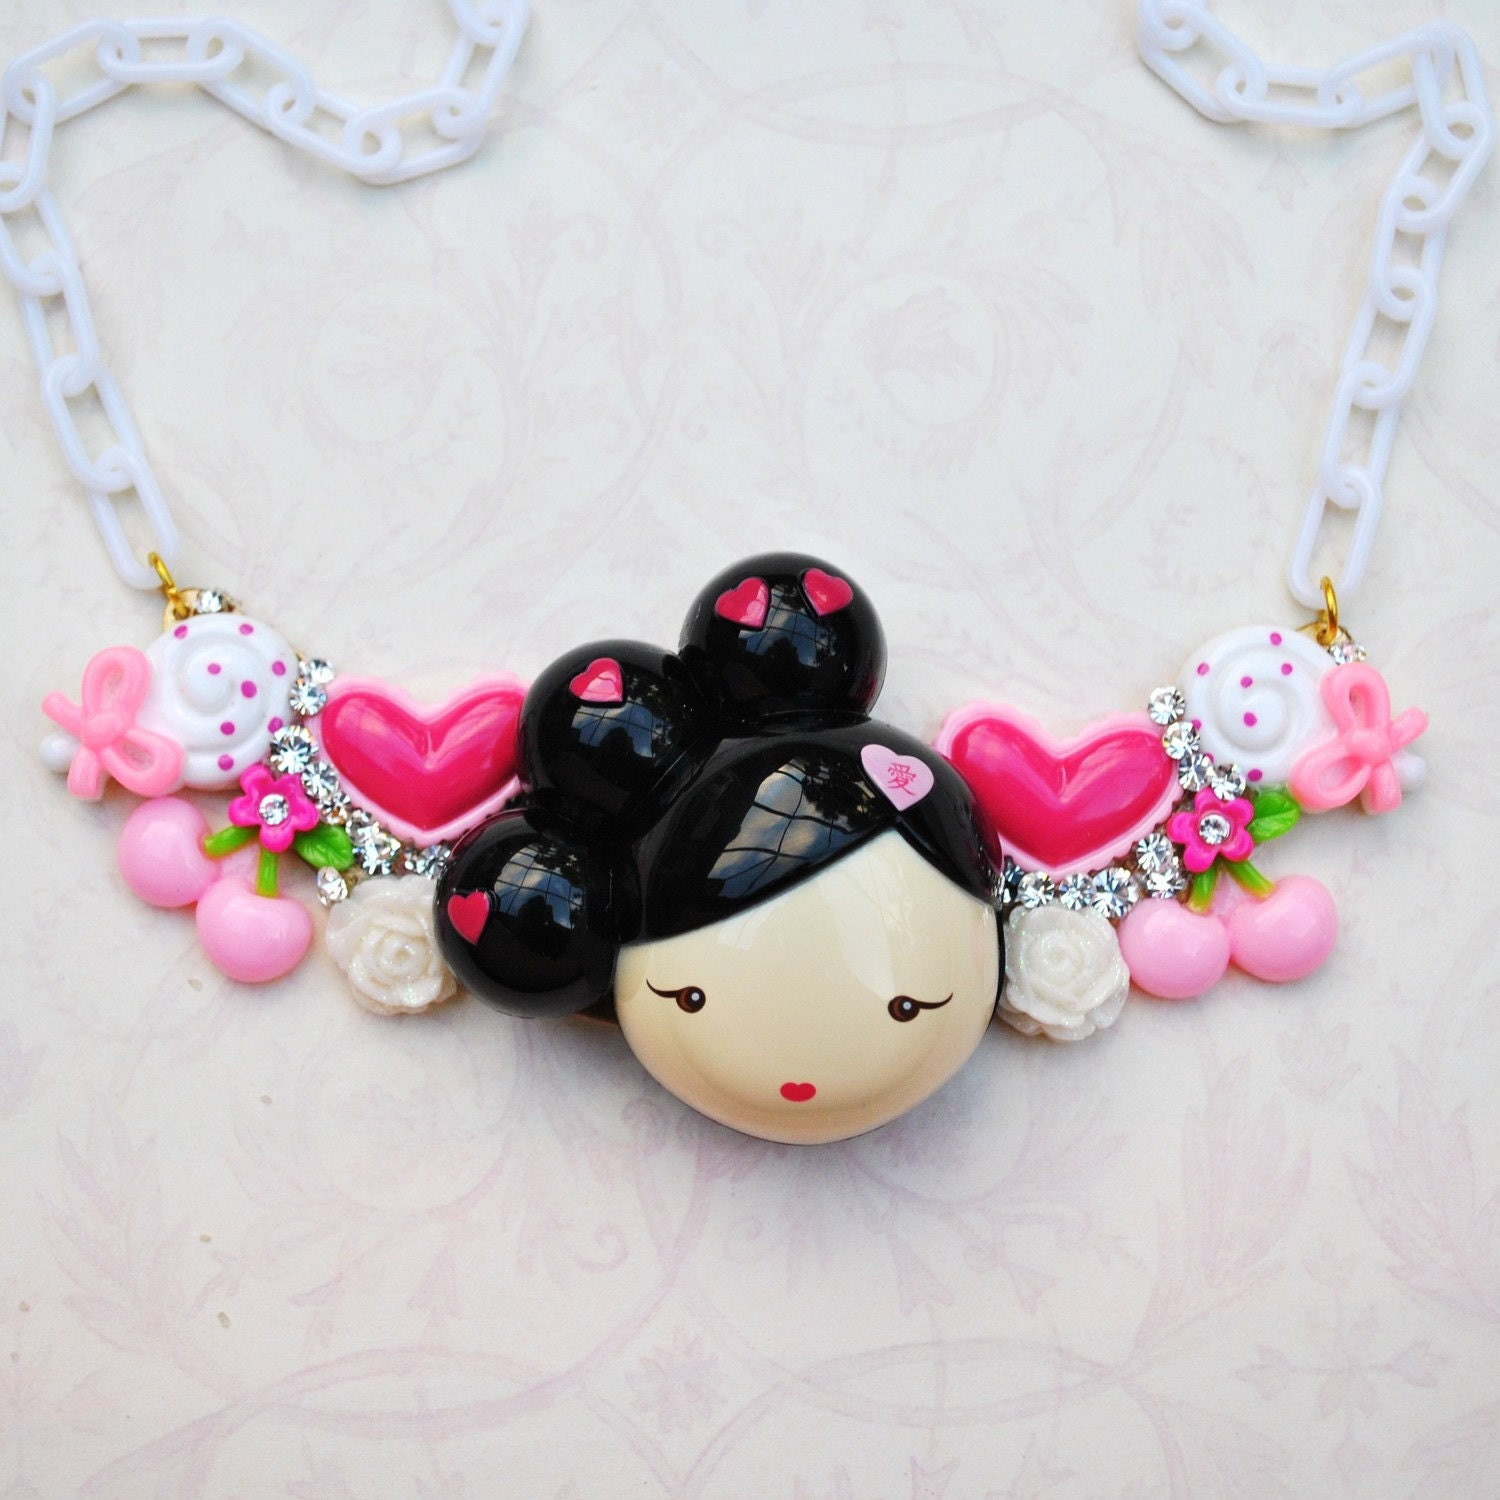 Swarovski Crystal Brunette Harajuku Girl Bib Necklace